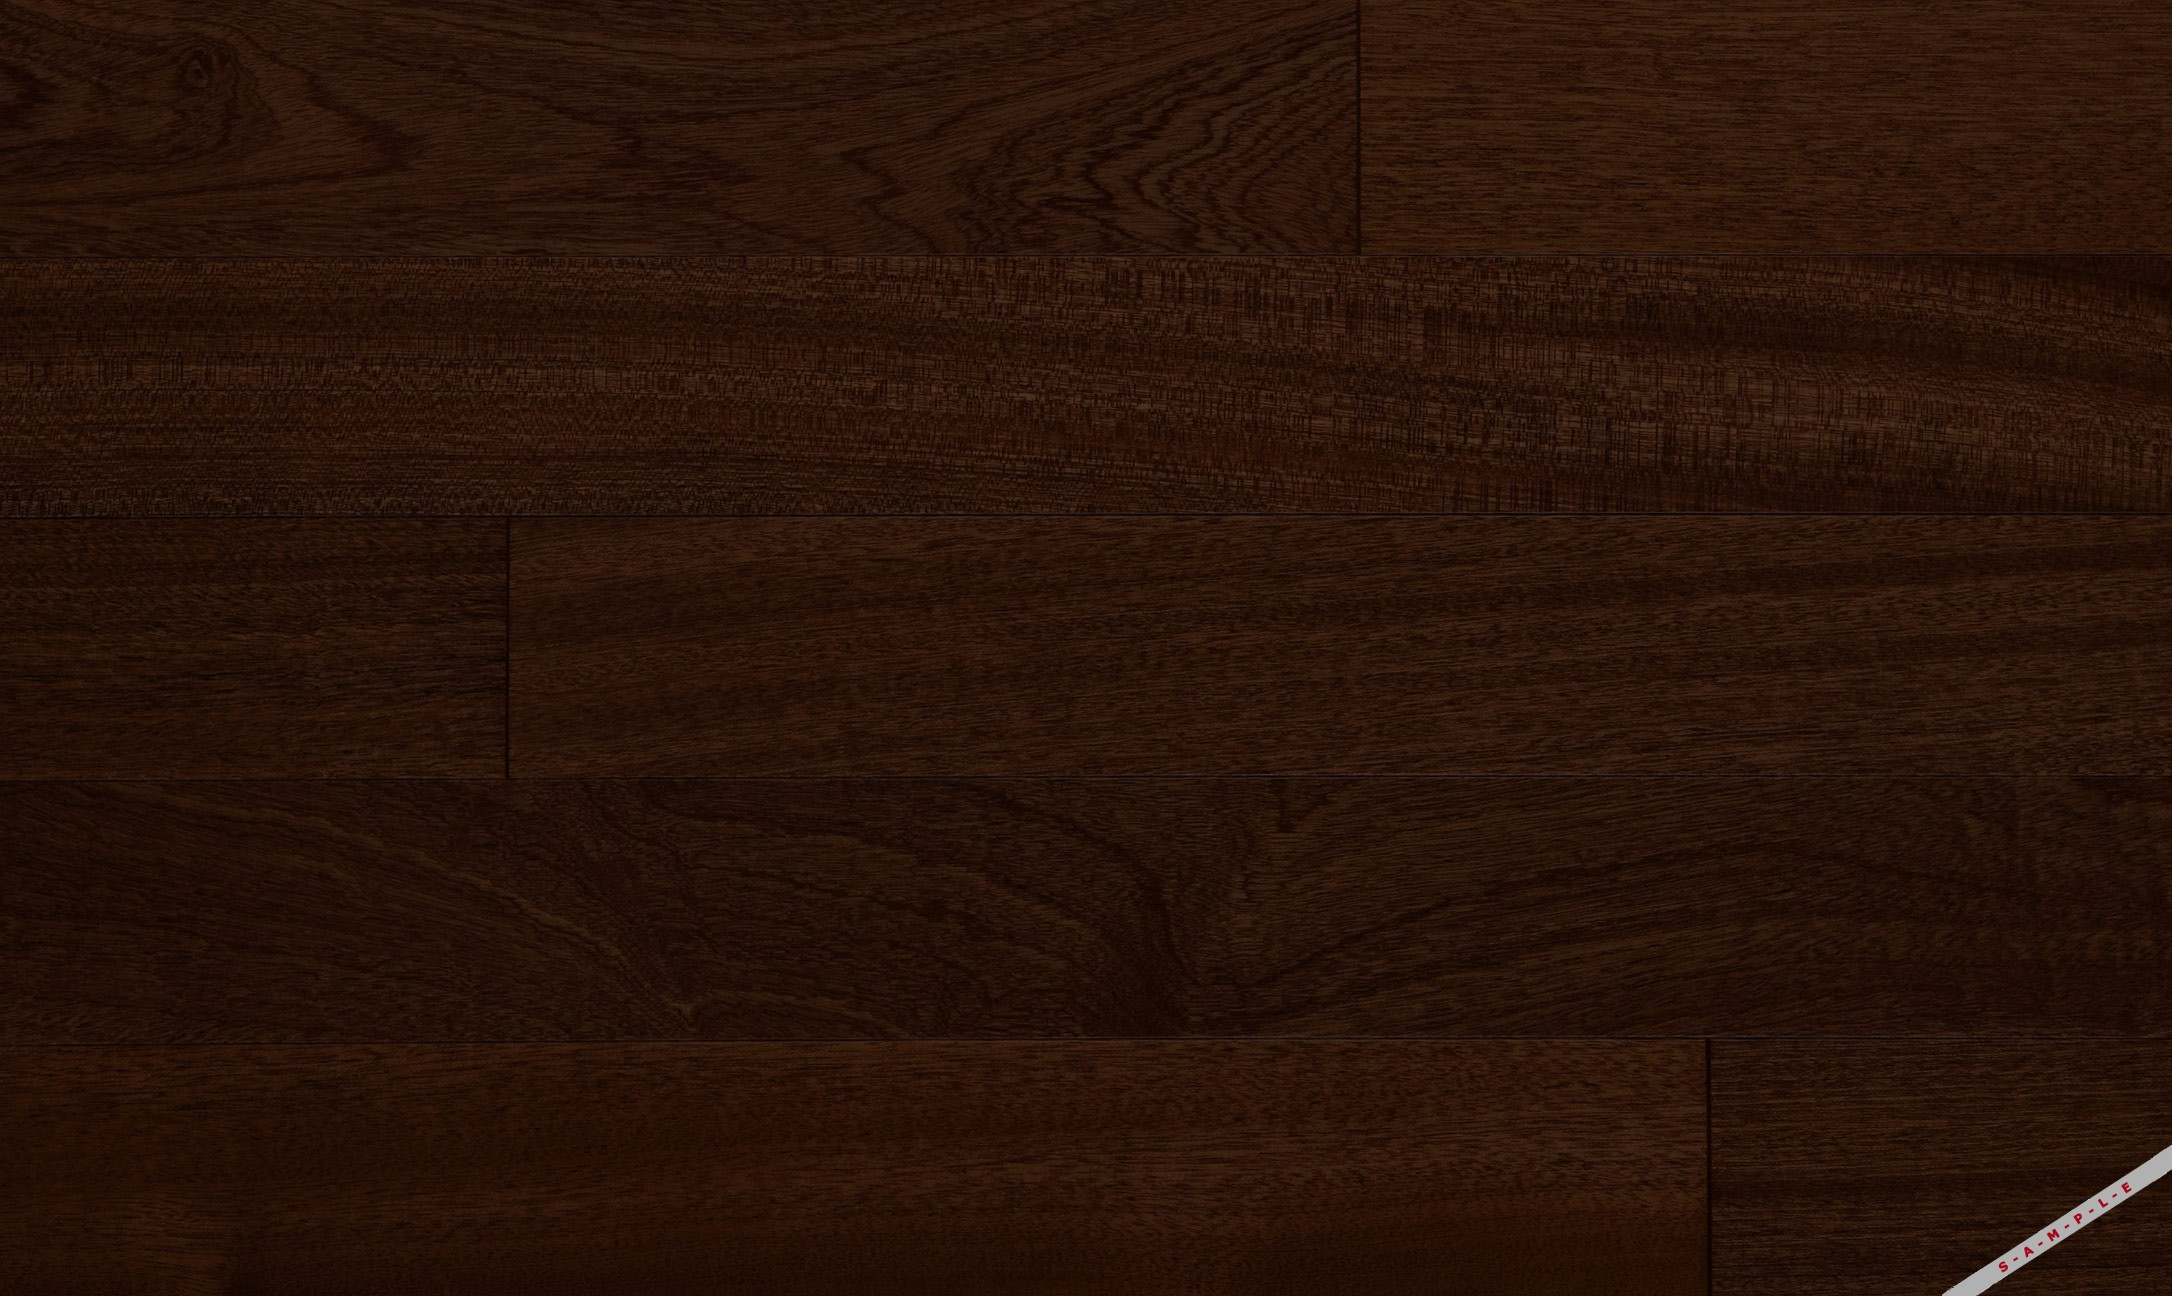 Remarkable African Mahogany Wood Flooring 2172 x 1296 · 539 kB · jpeg